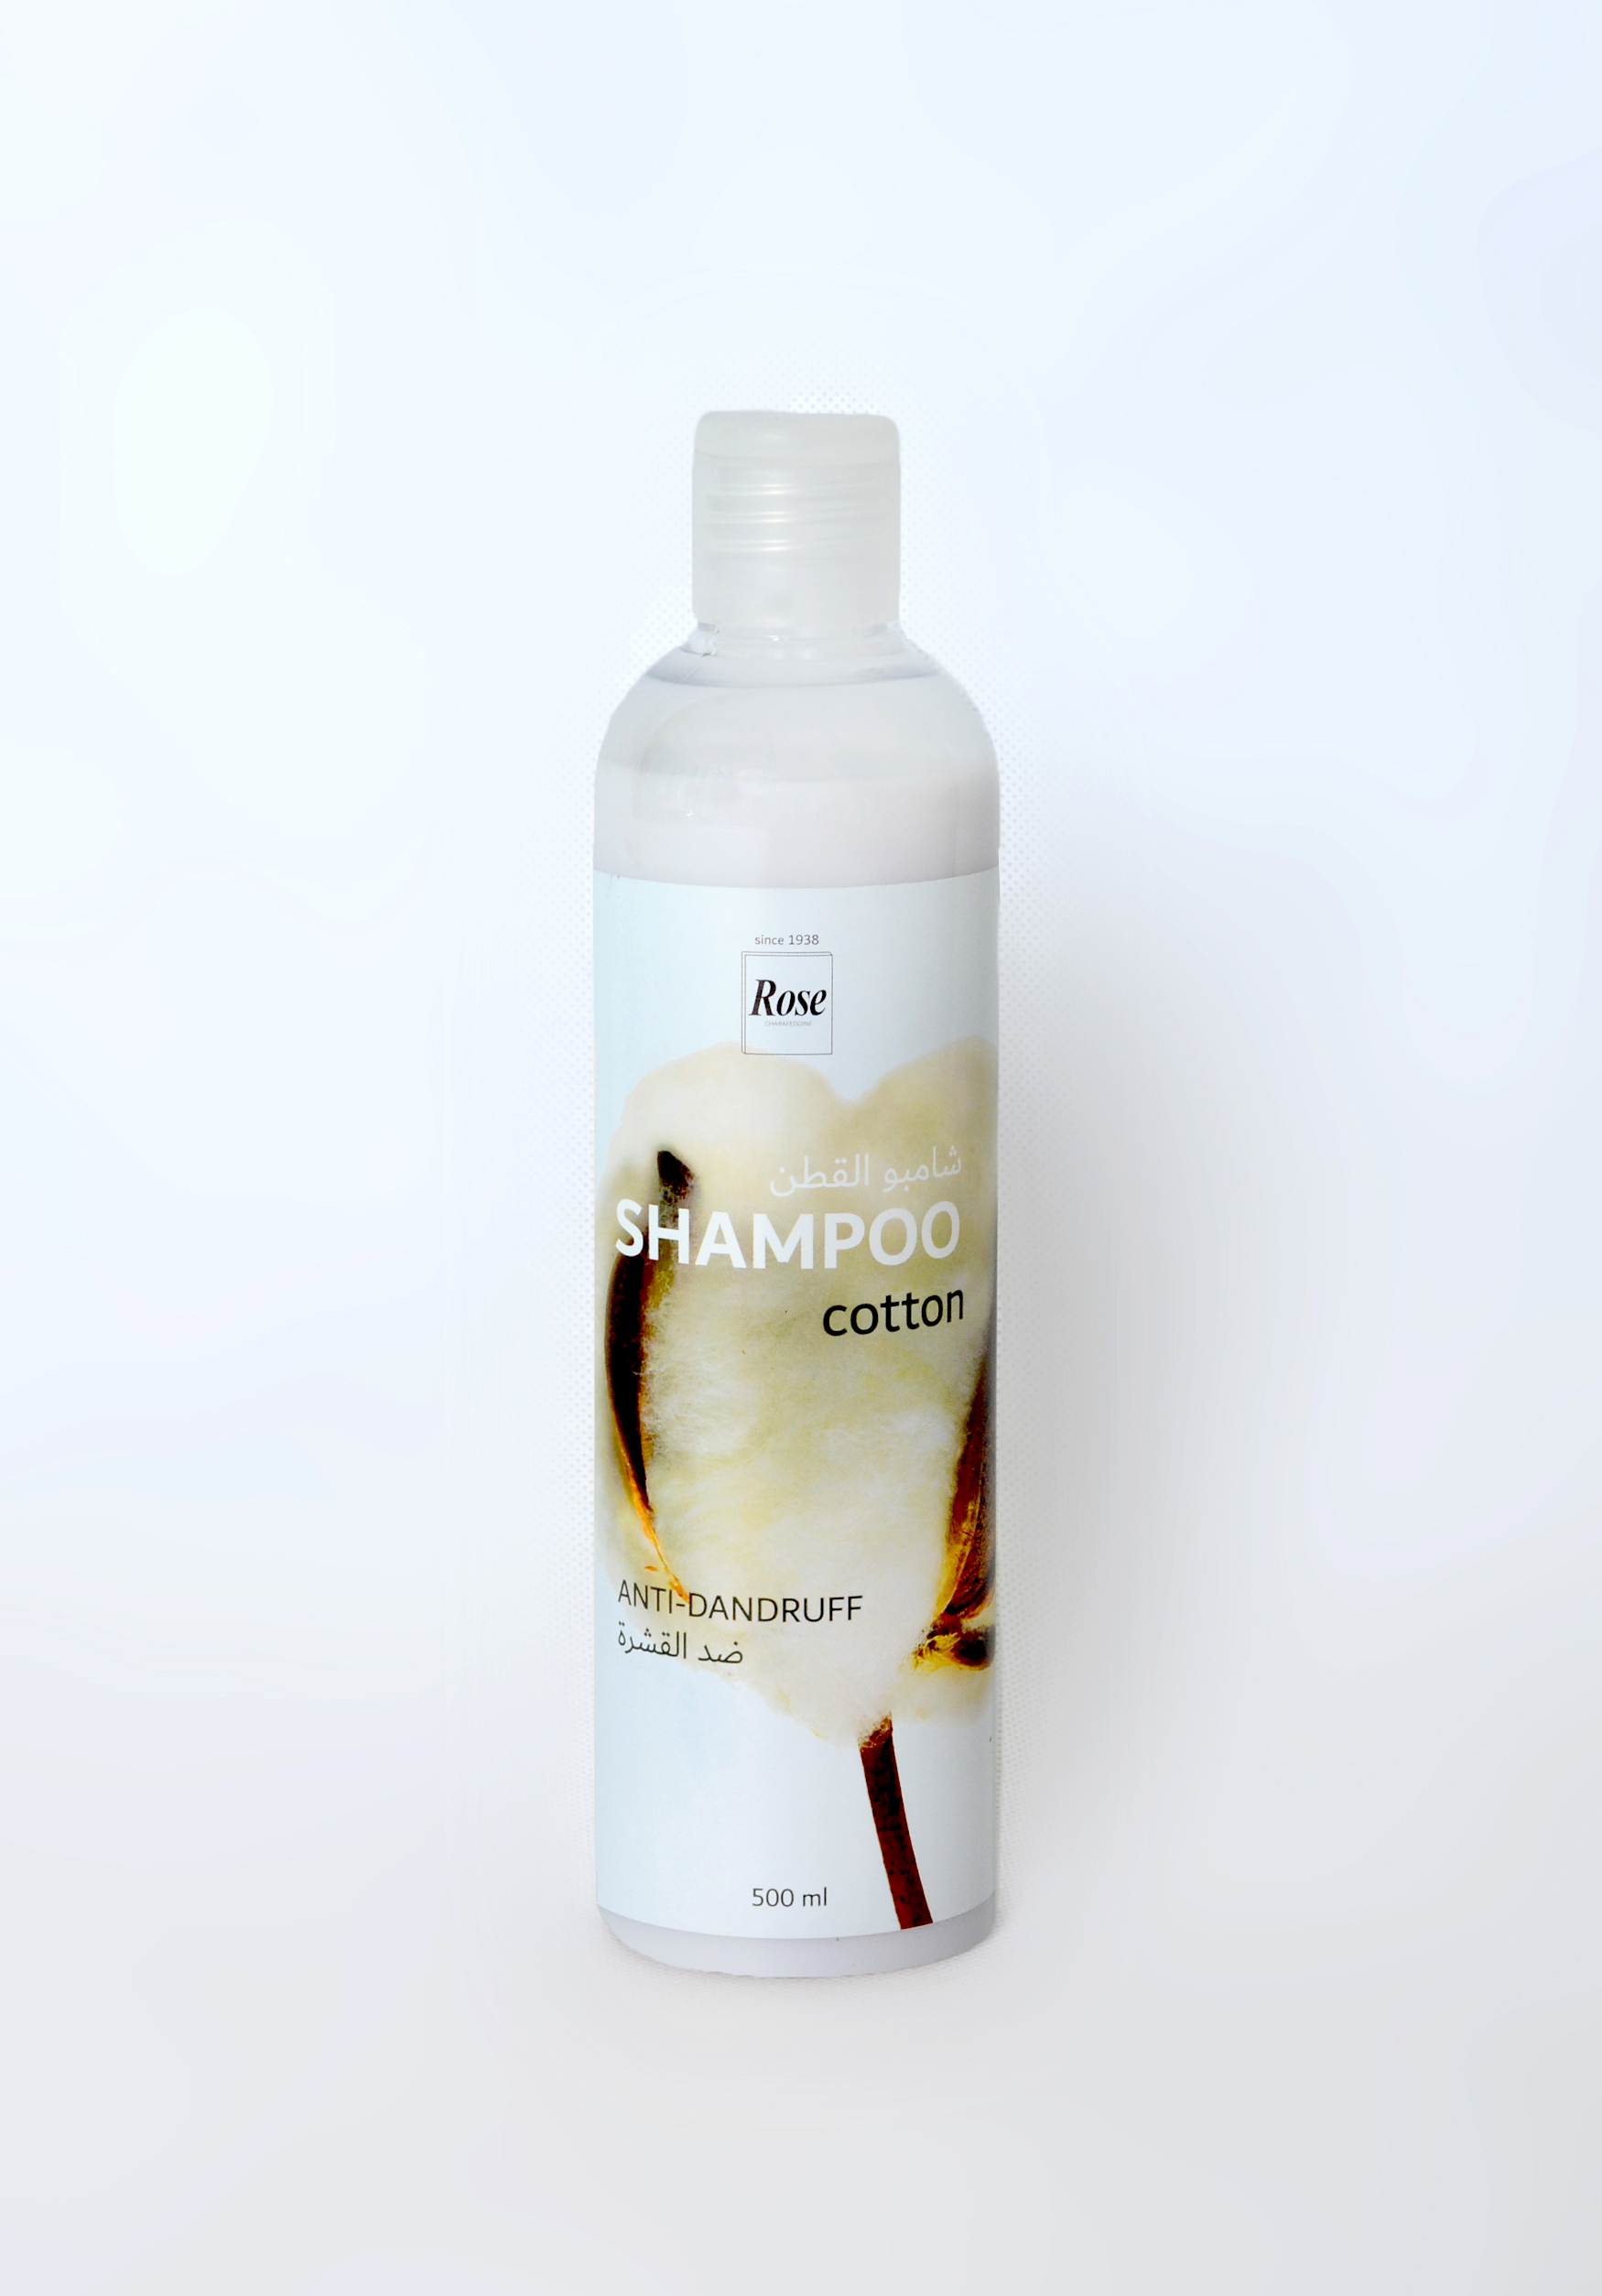 Cotton Shampoo